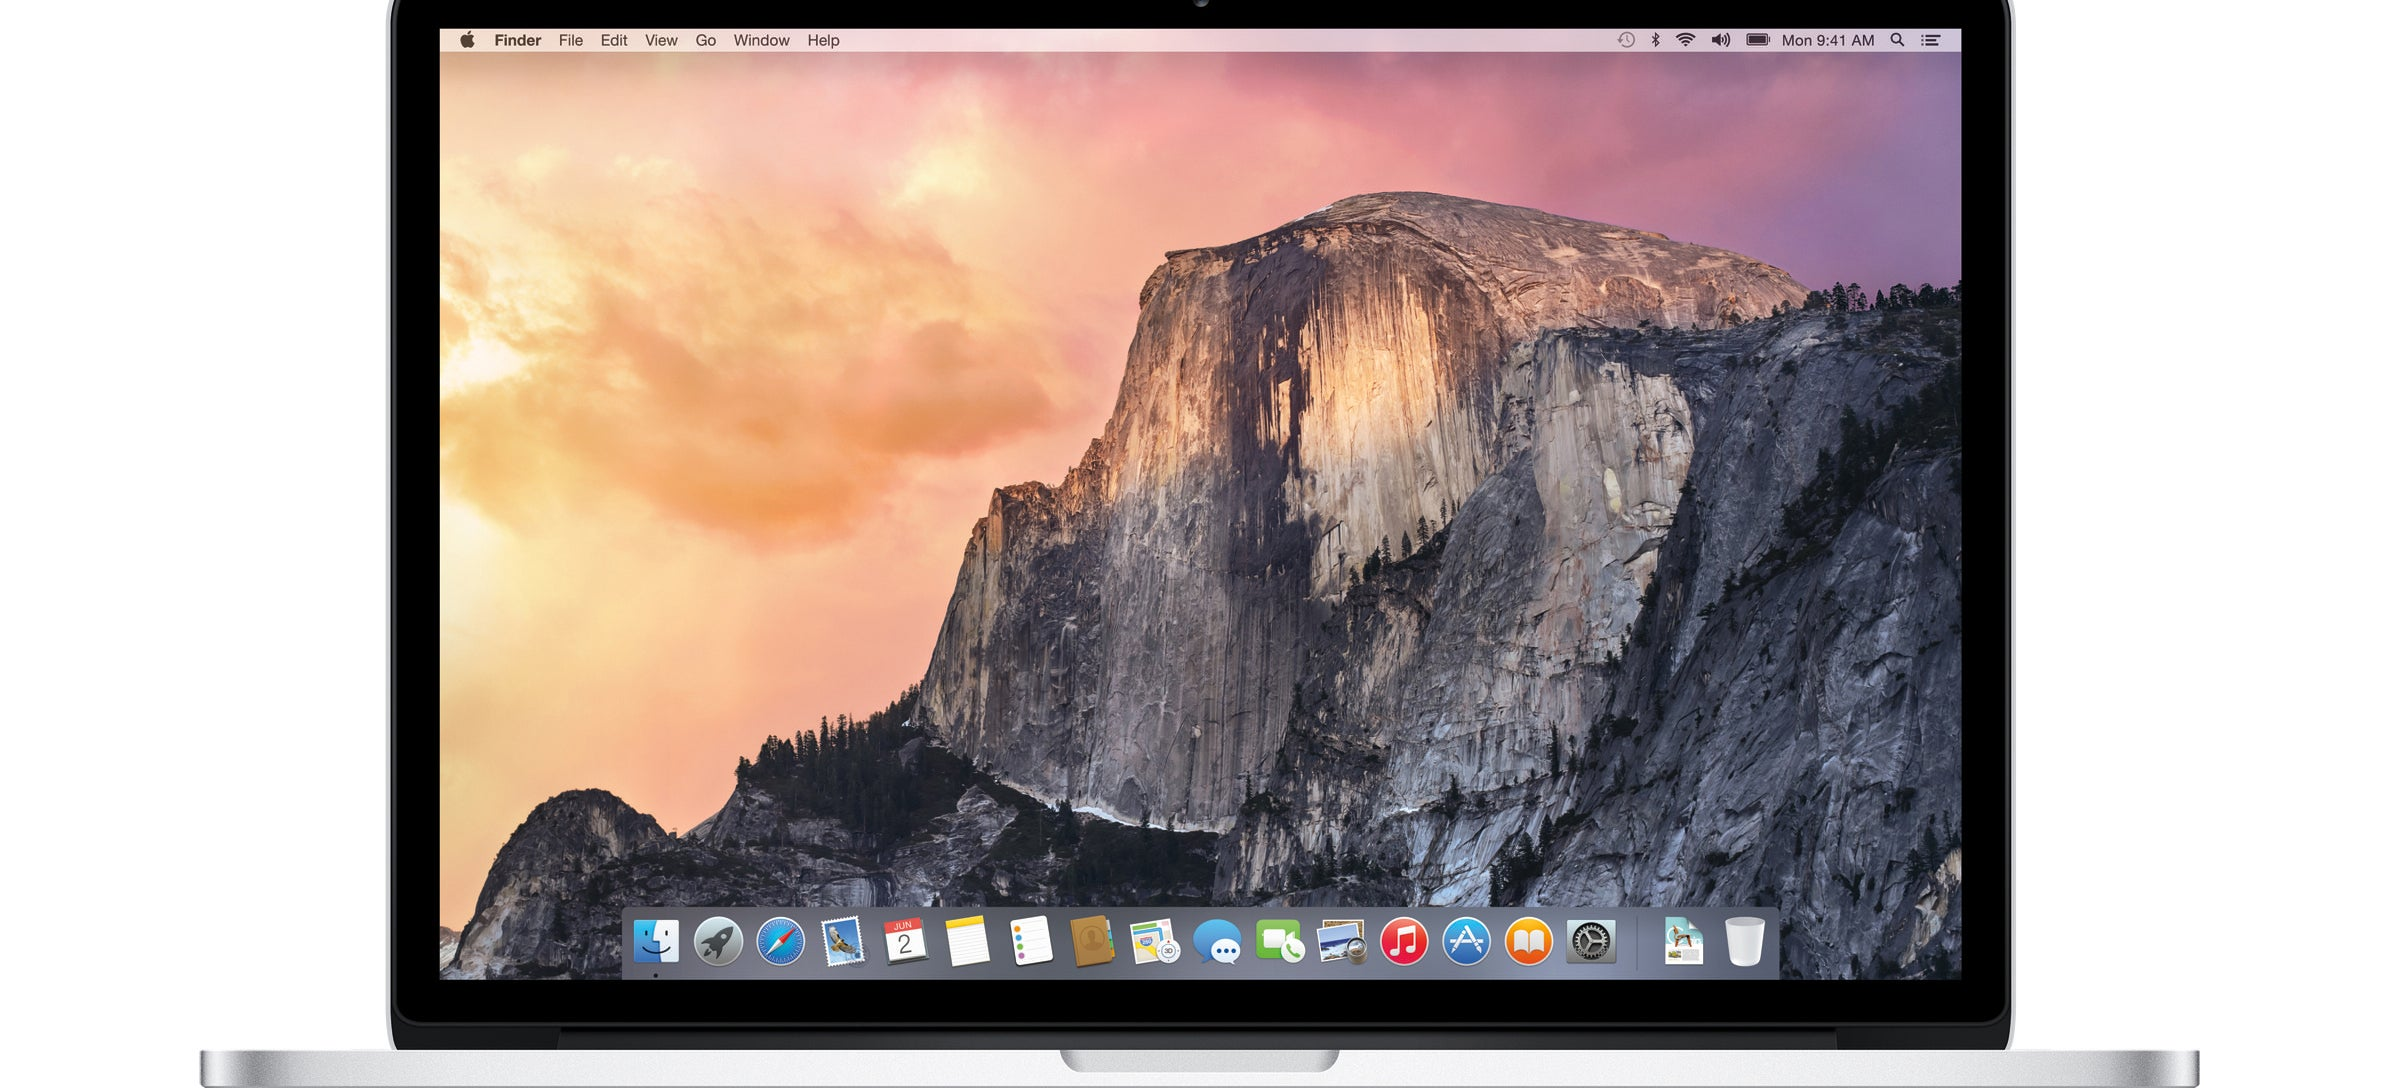 Mac OS X Yosemite: Everything You Need To Know